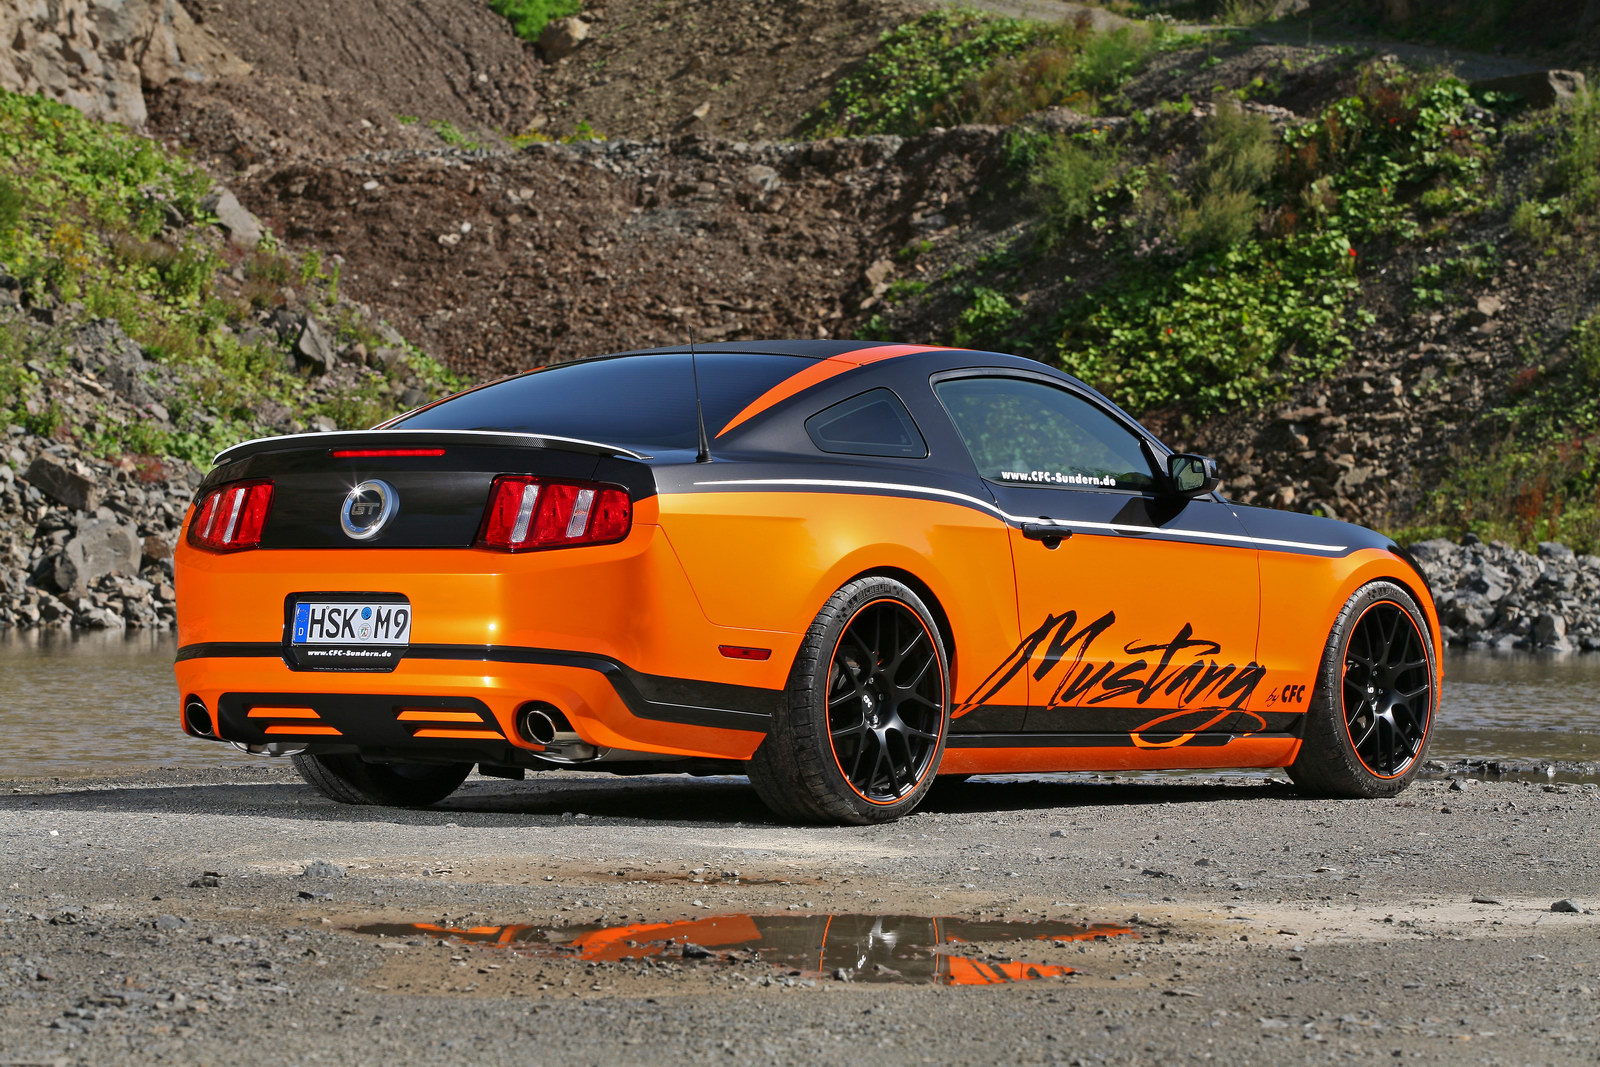 Němci z Design World upravili Ford Mustang GT 4